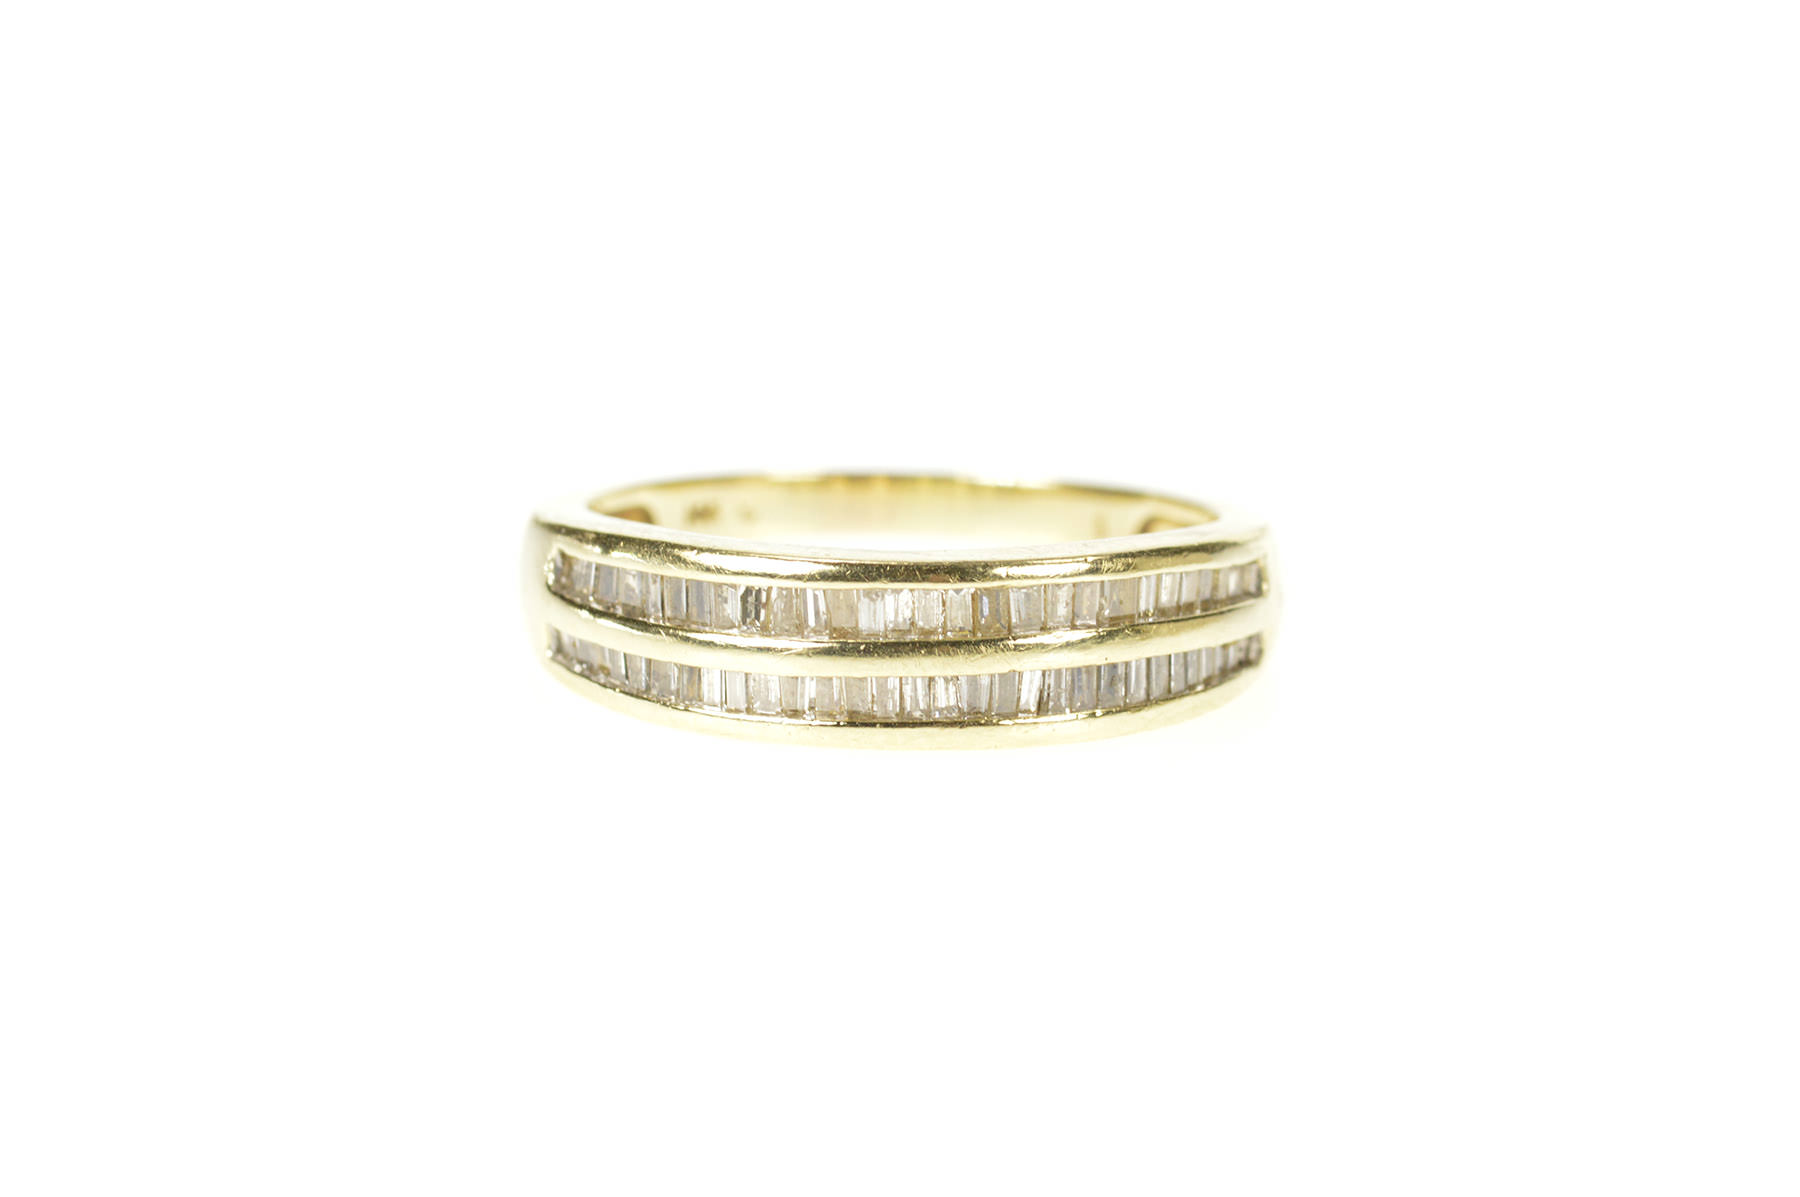 14K Two Tone Diamond Channel Inset Wedding Band Ring Size 7.75 Yellow Gold